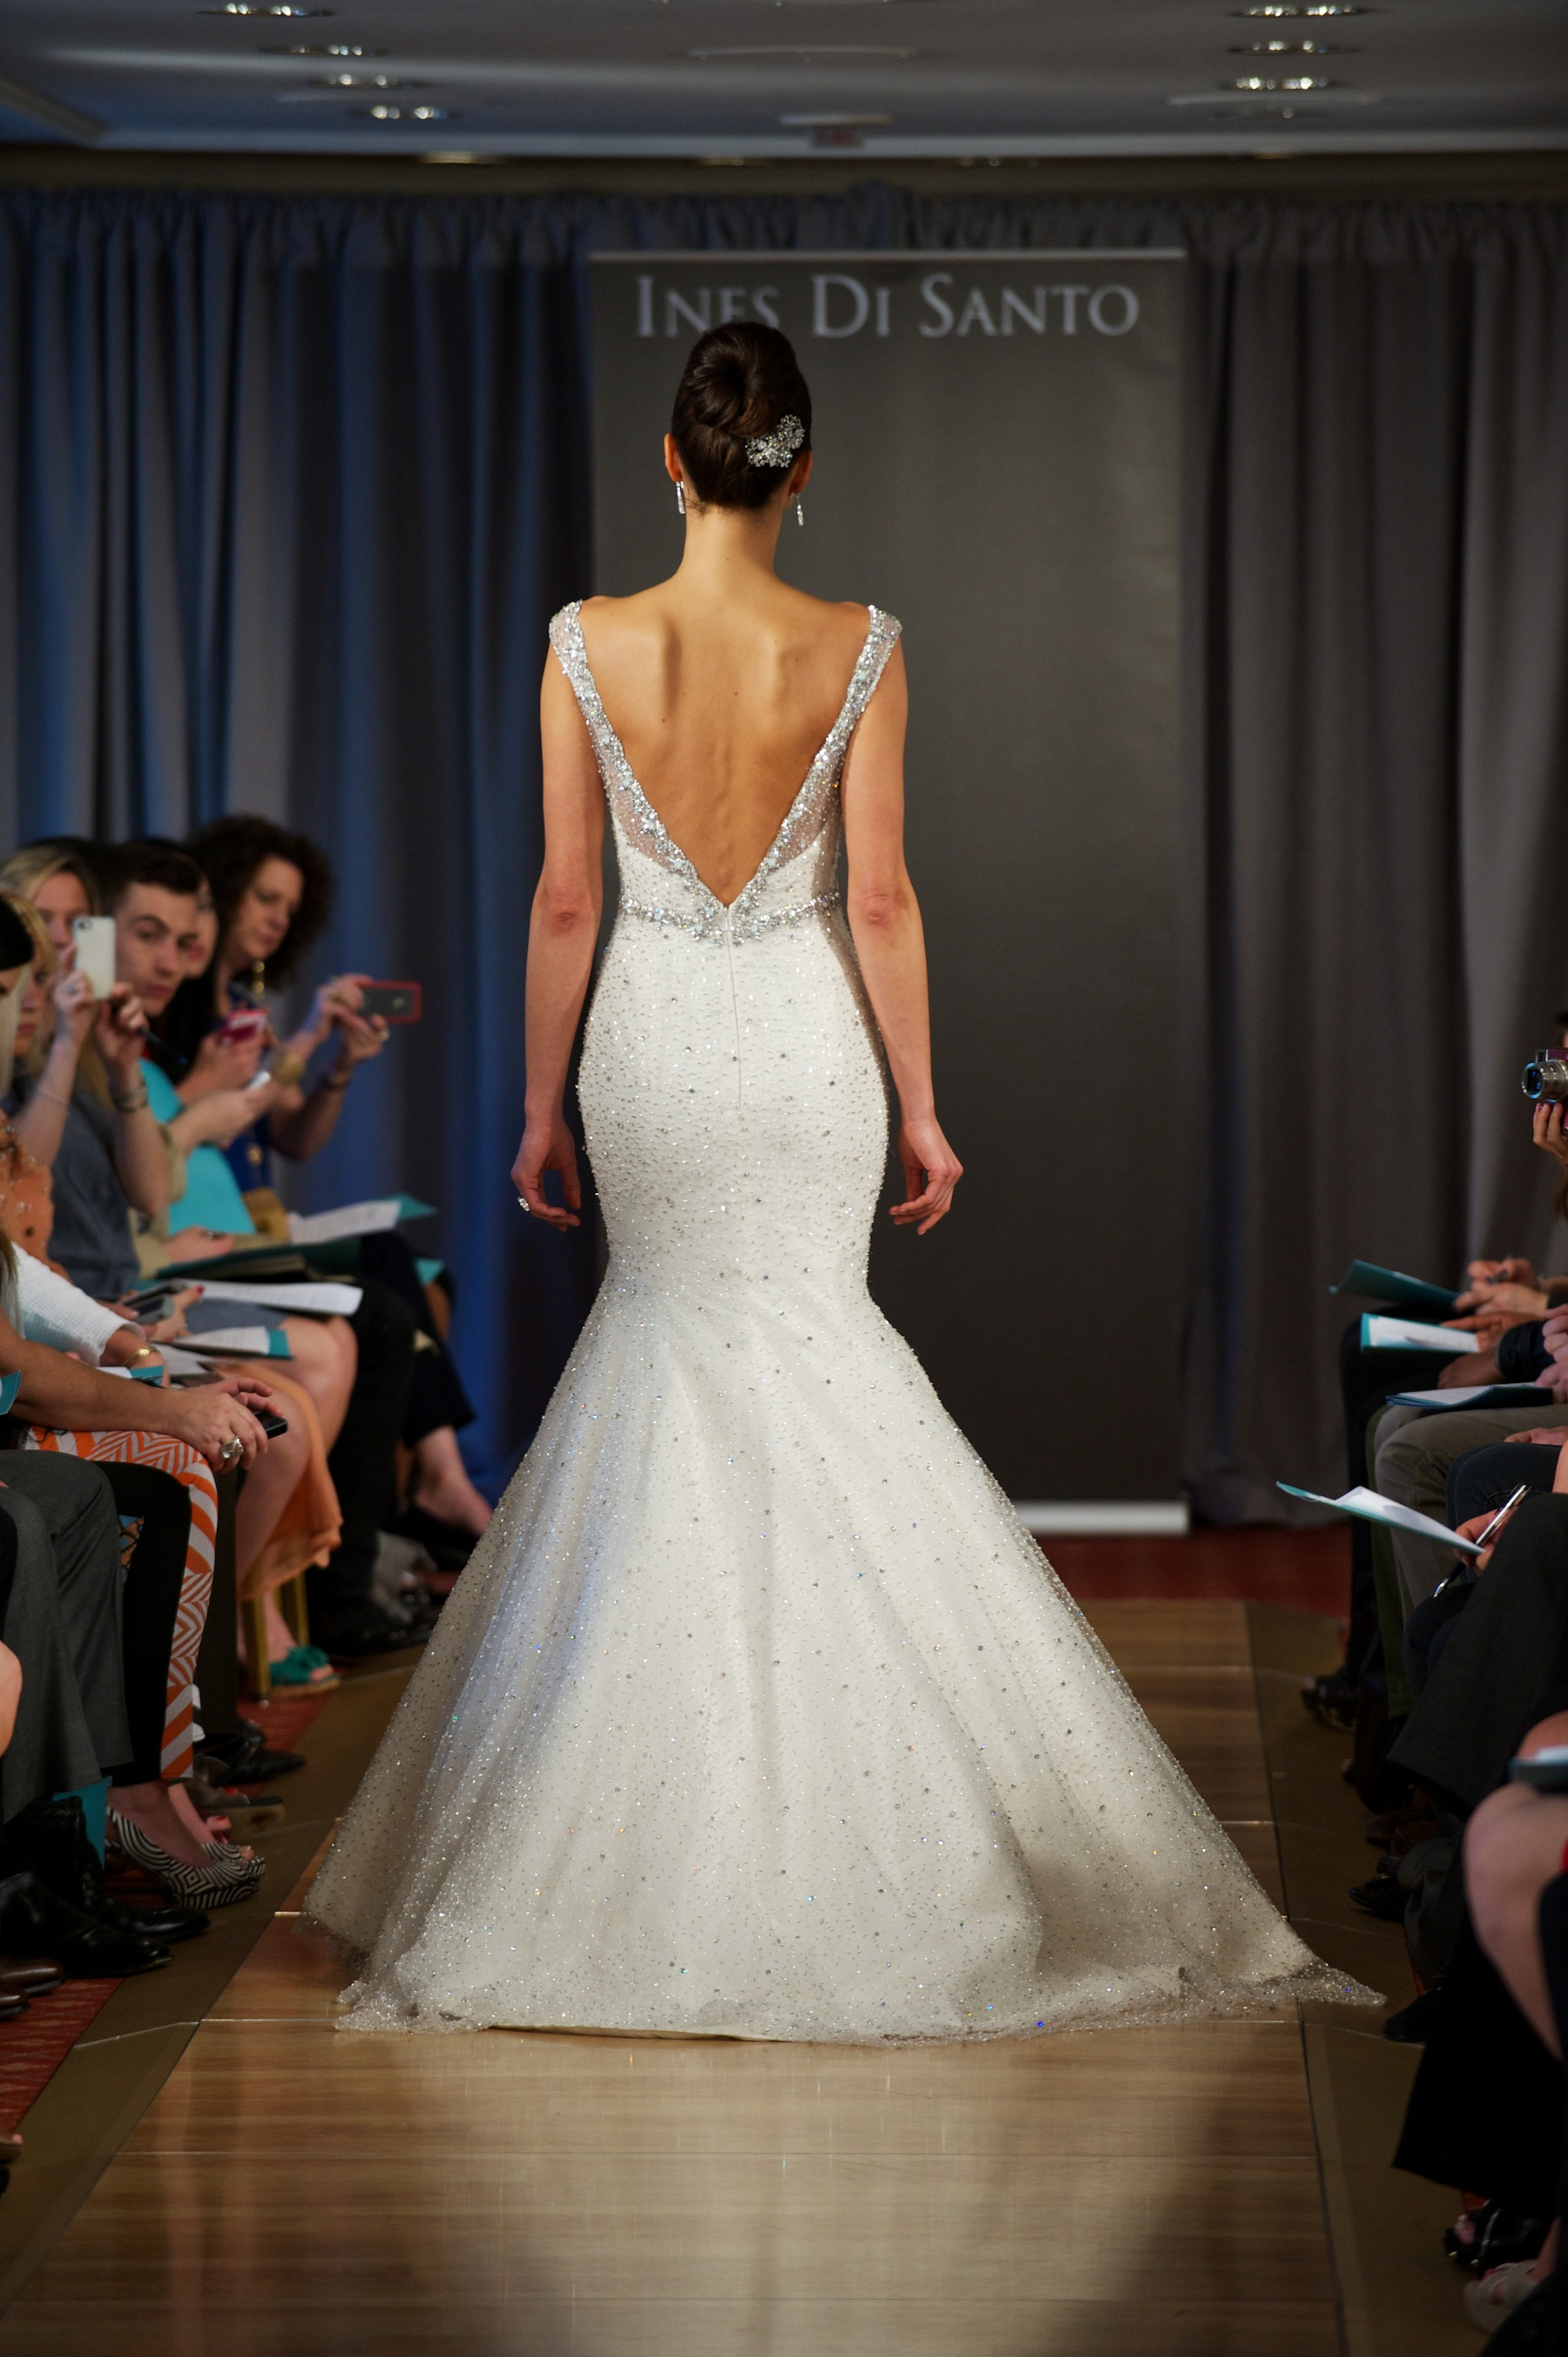 Wedding dress spring 2013 bridal gowns ines di santo 28 for Ines di santo wedding dress